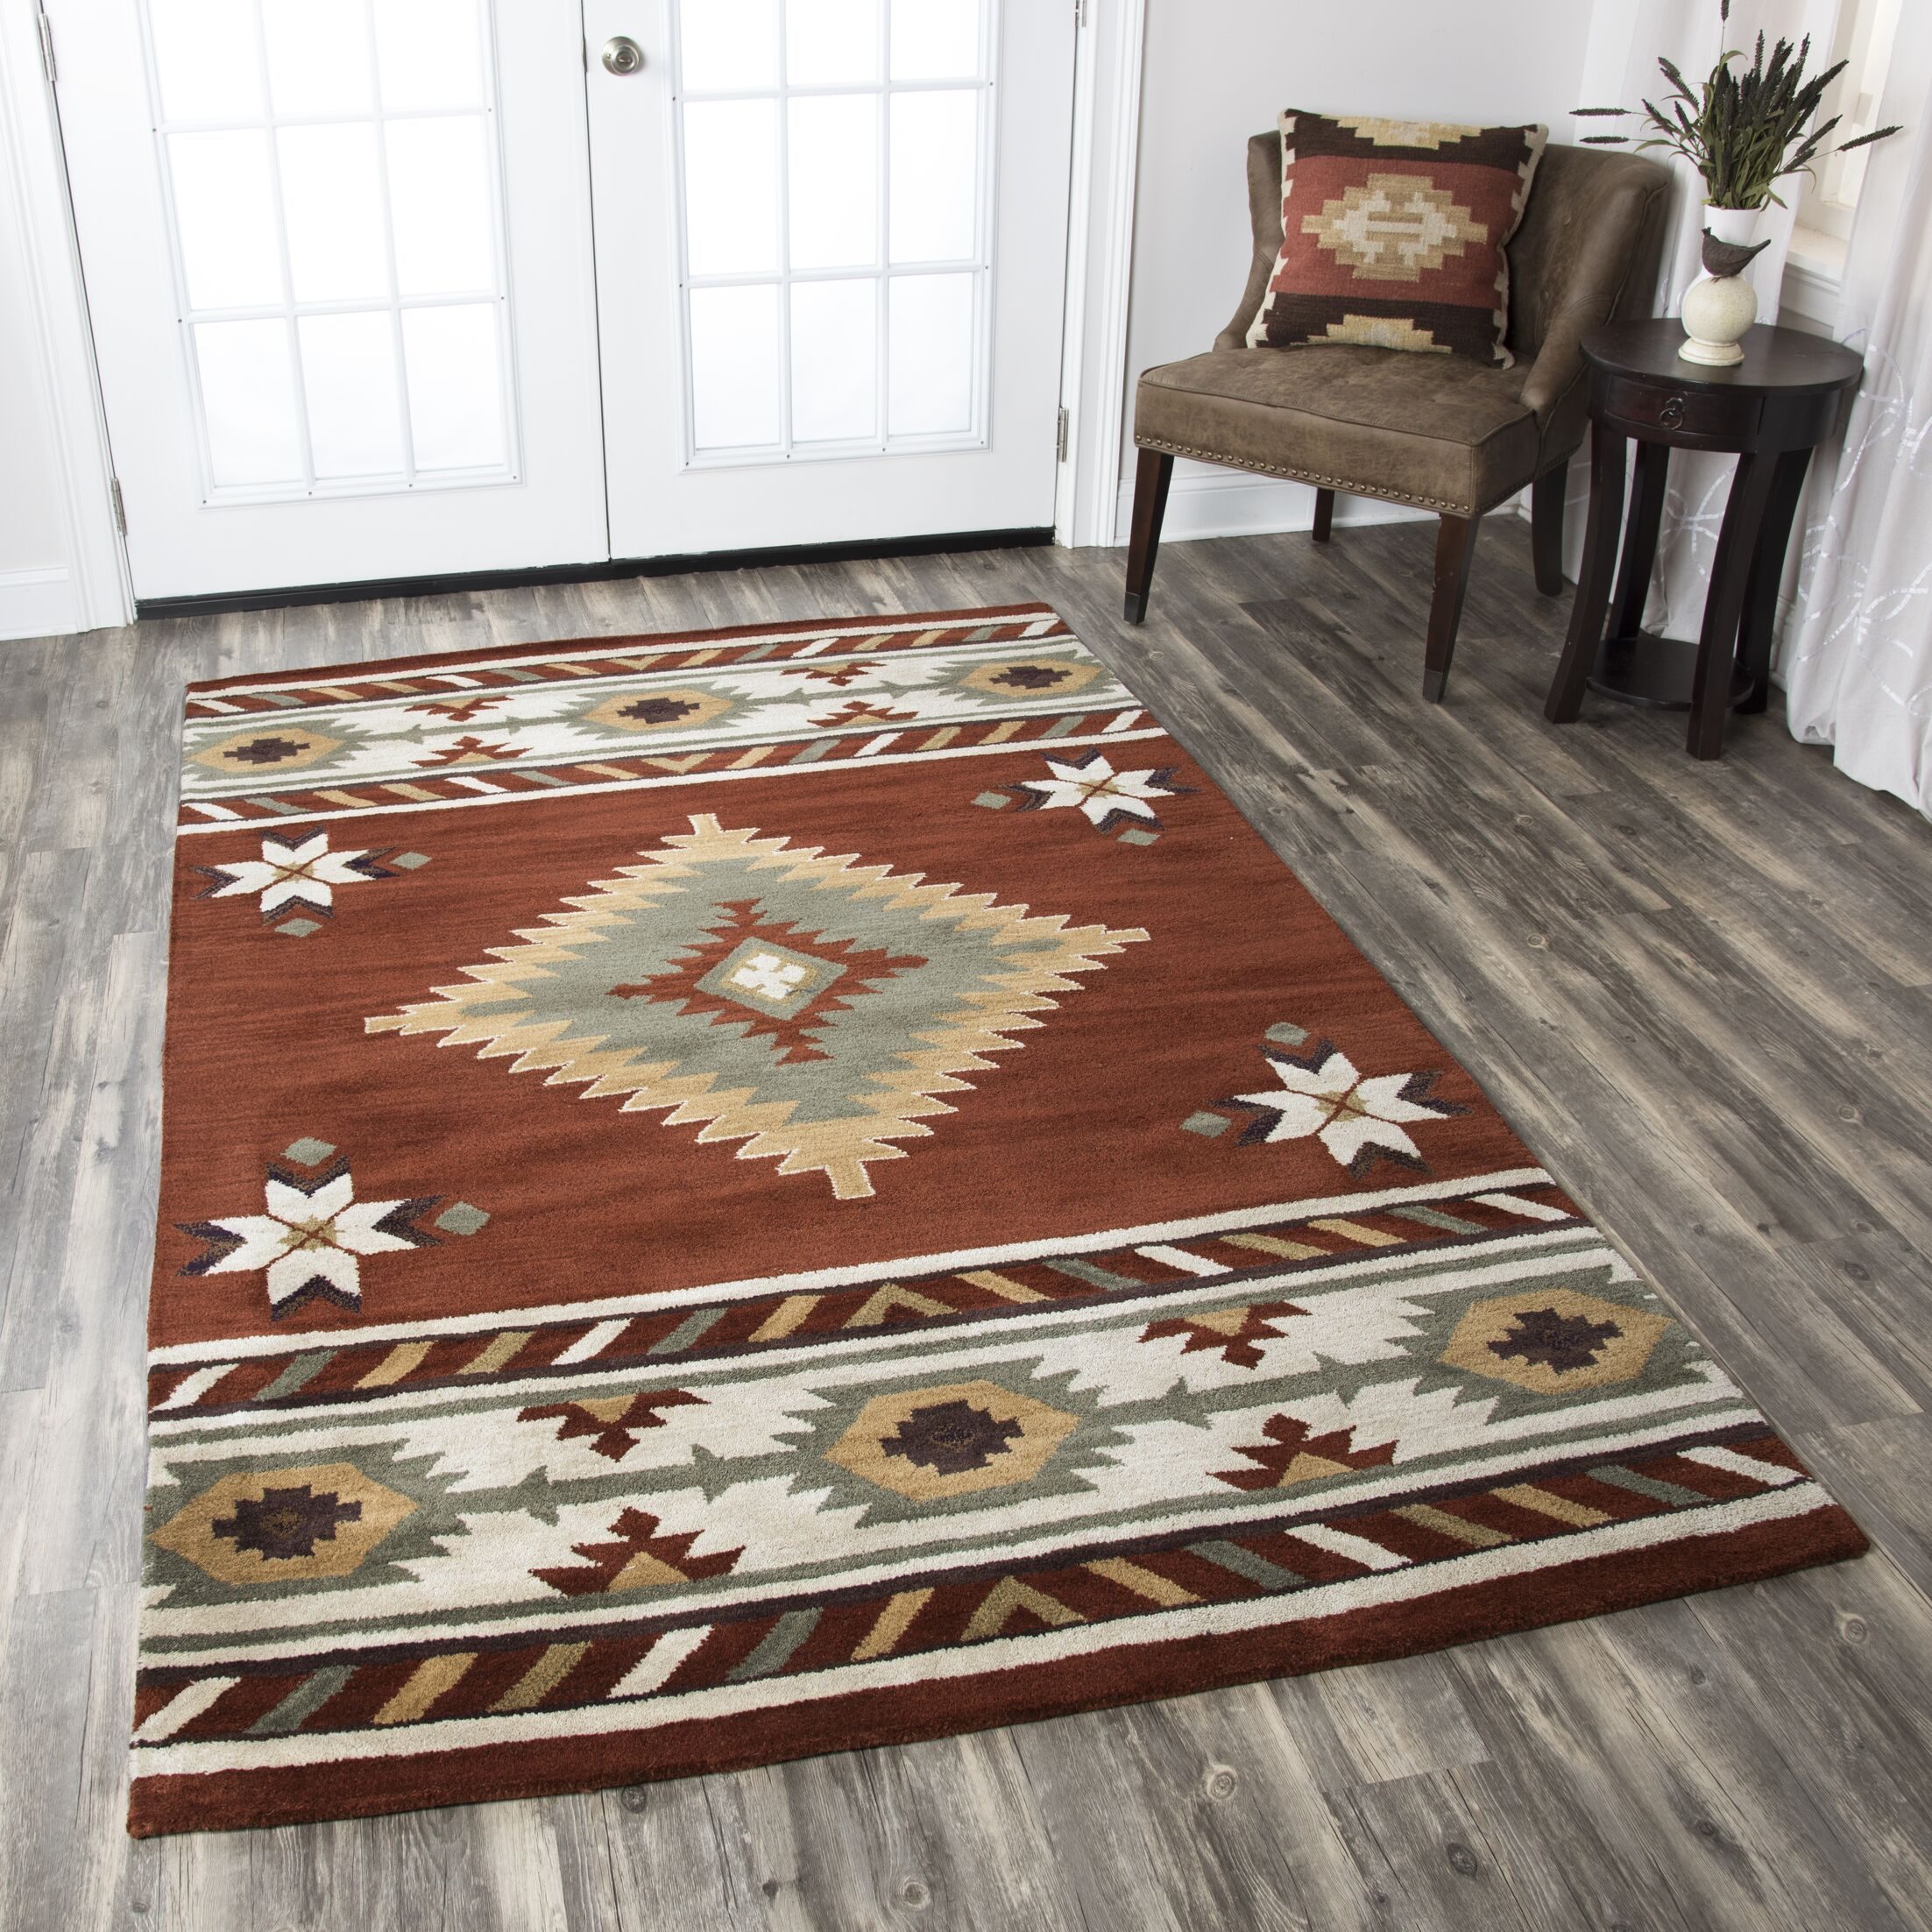 Owen Hand woven/Tufted Wool Area Rug Rug Size: Rectangle 8' x 10'